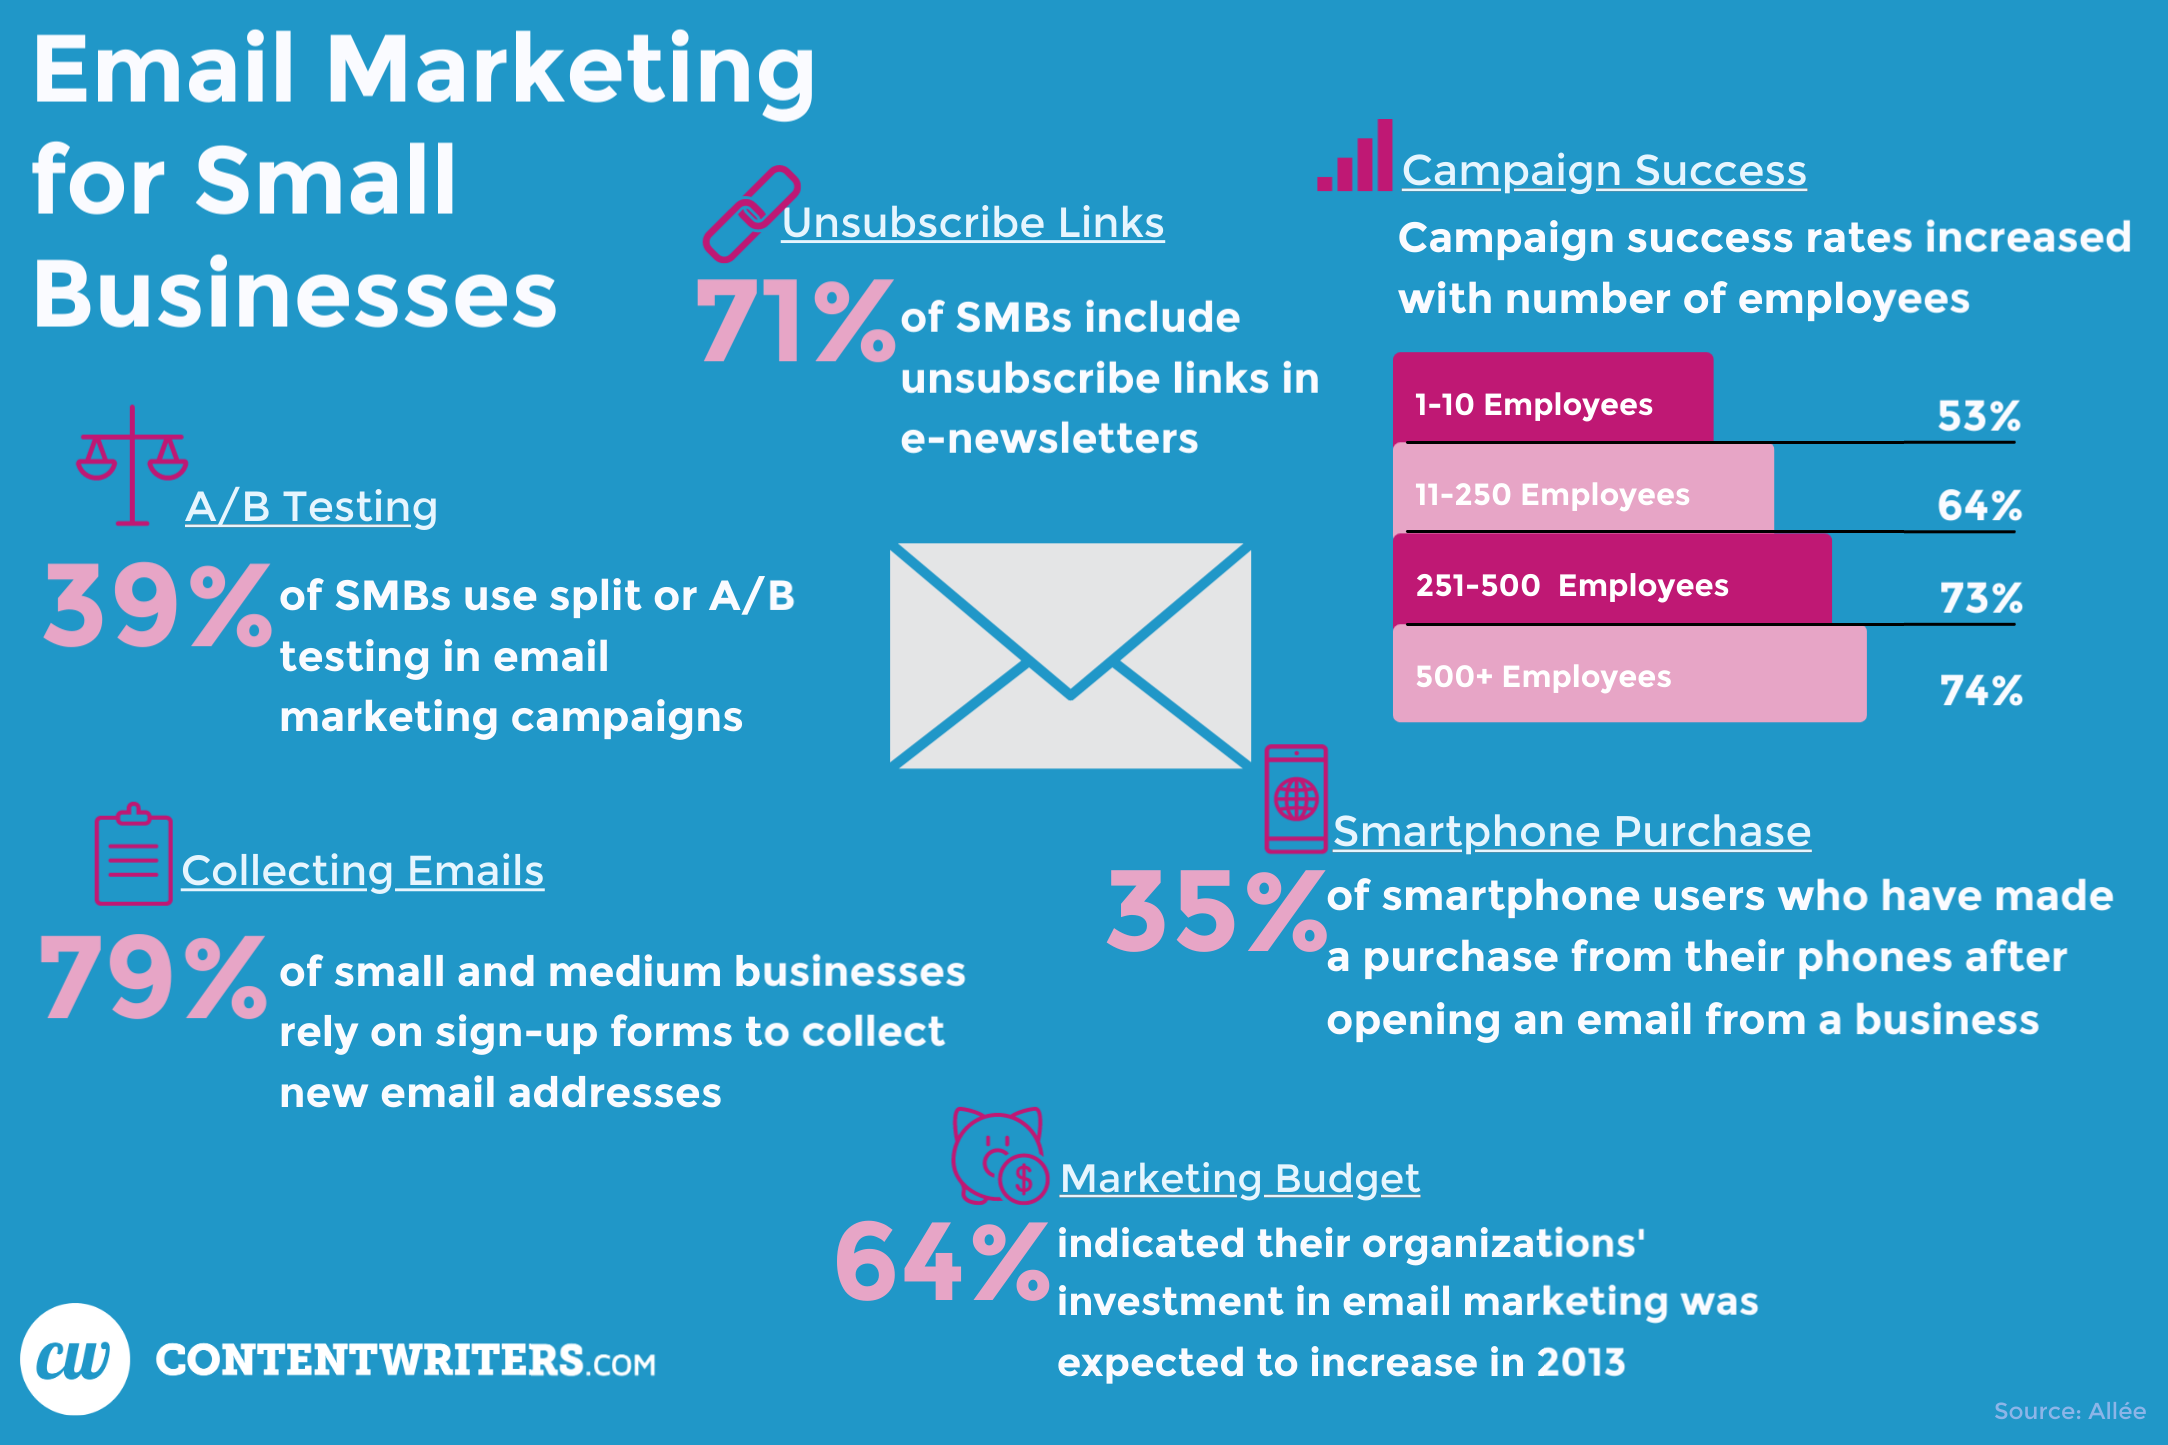 Email Marketing for Small Businesses ContentWriters  A/B Testing - 39% of SMBs use plit or A/B Testing in email marketing campaigns  Collecting Emails - 79% of small and medium businesses rely on sign-up forms to collect new email addresses  Unsubscribe links - 71% of smbs include unsubscribe links in e-newsletters  Marketing budget - 64% indicated their organizations' investment in email marketing was expected to increase in 2013  Campaign Success - campaign success rates increased with number of employees  Smartphone Purchase - 35% of smartphone users who have made a purchase from their phones after opening an email from a business  via Allee